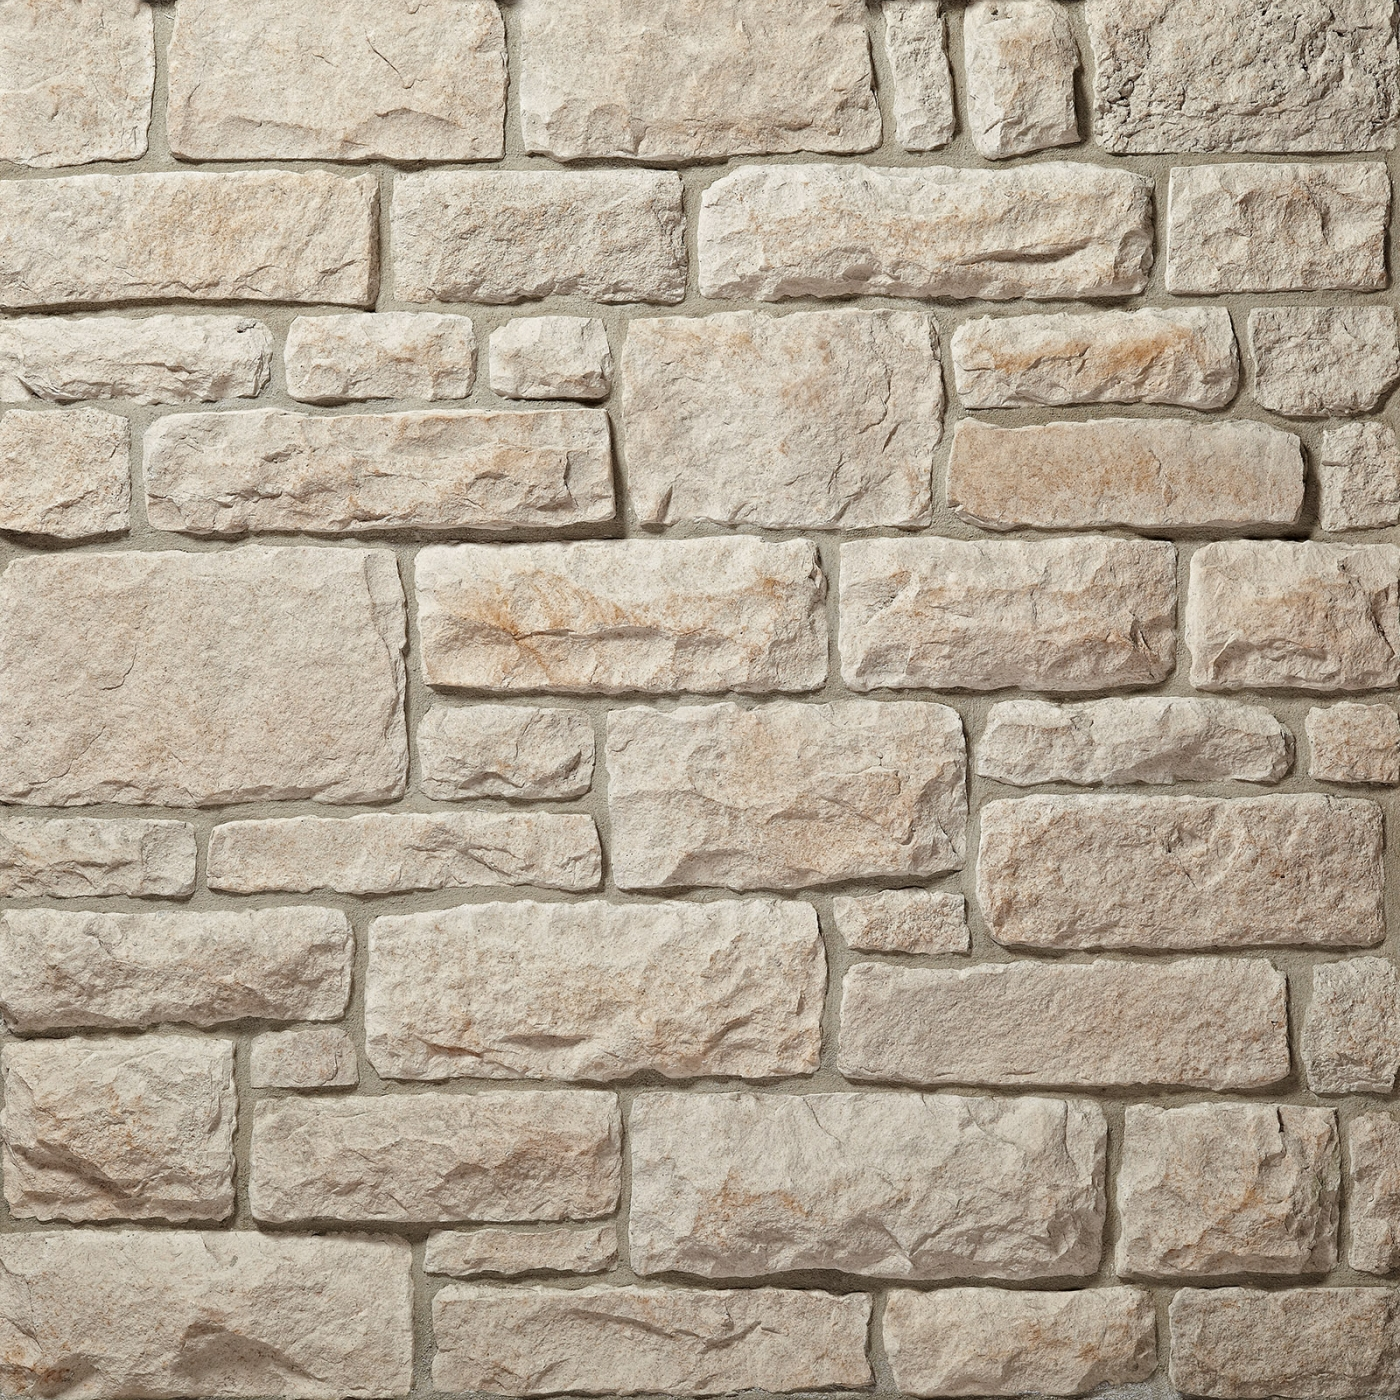 Texas Cut Stone Stone Veneer from Environmental StoneWorks